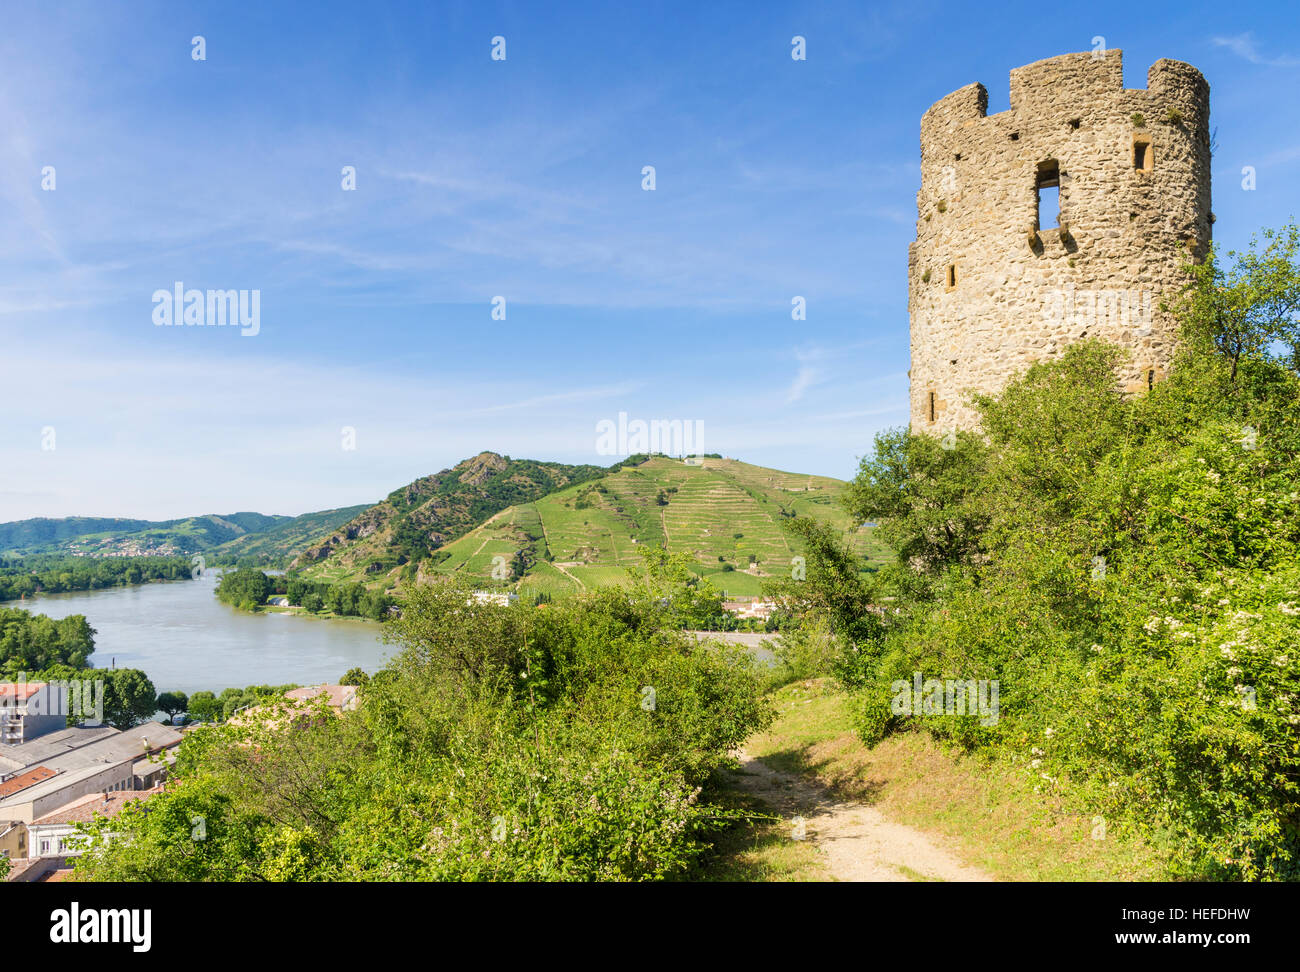 Pierregourde Tower over looking the Rhône River, Tournon-sur-Rhône, Ardèche, France - Stock Image